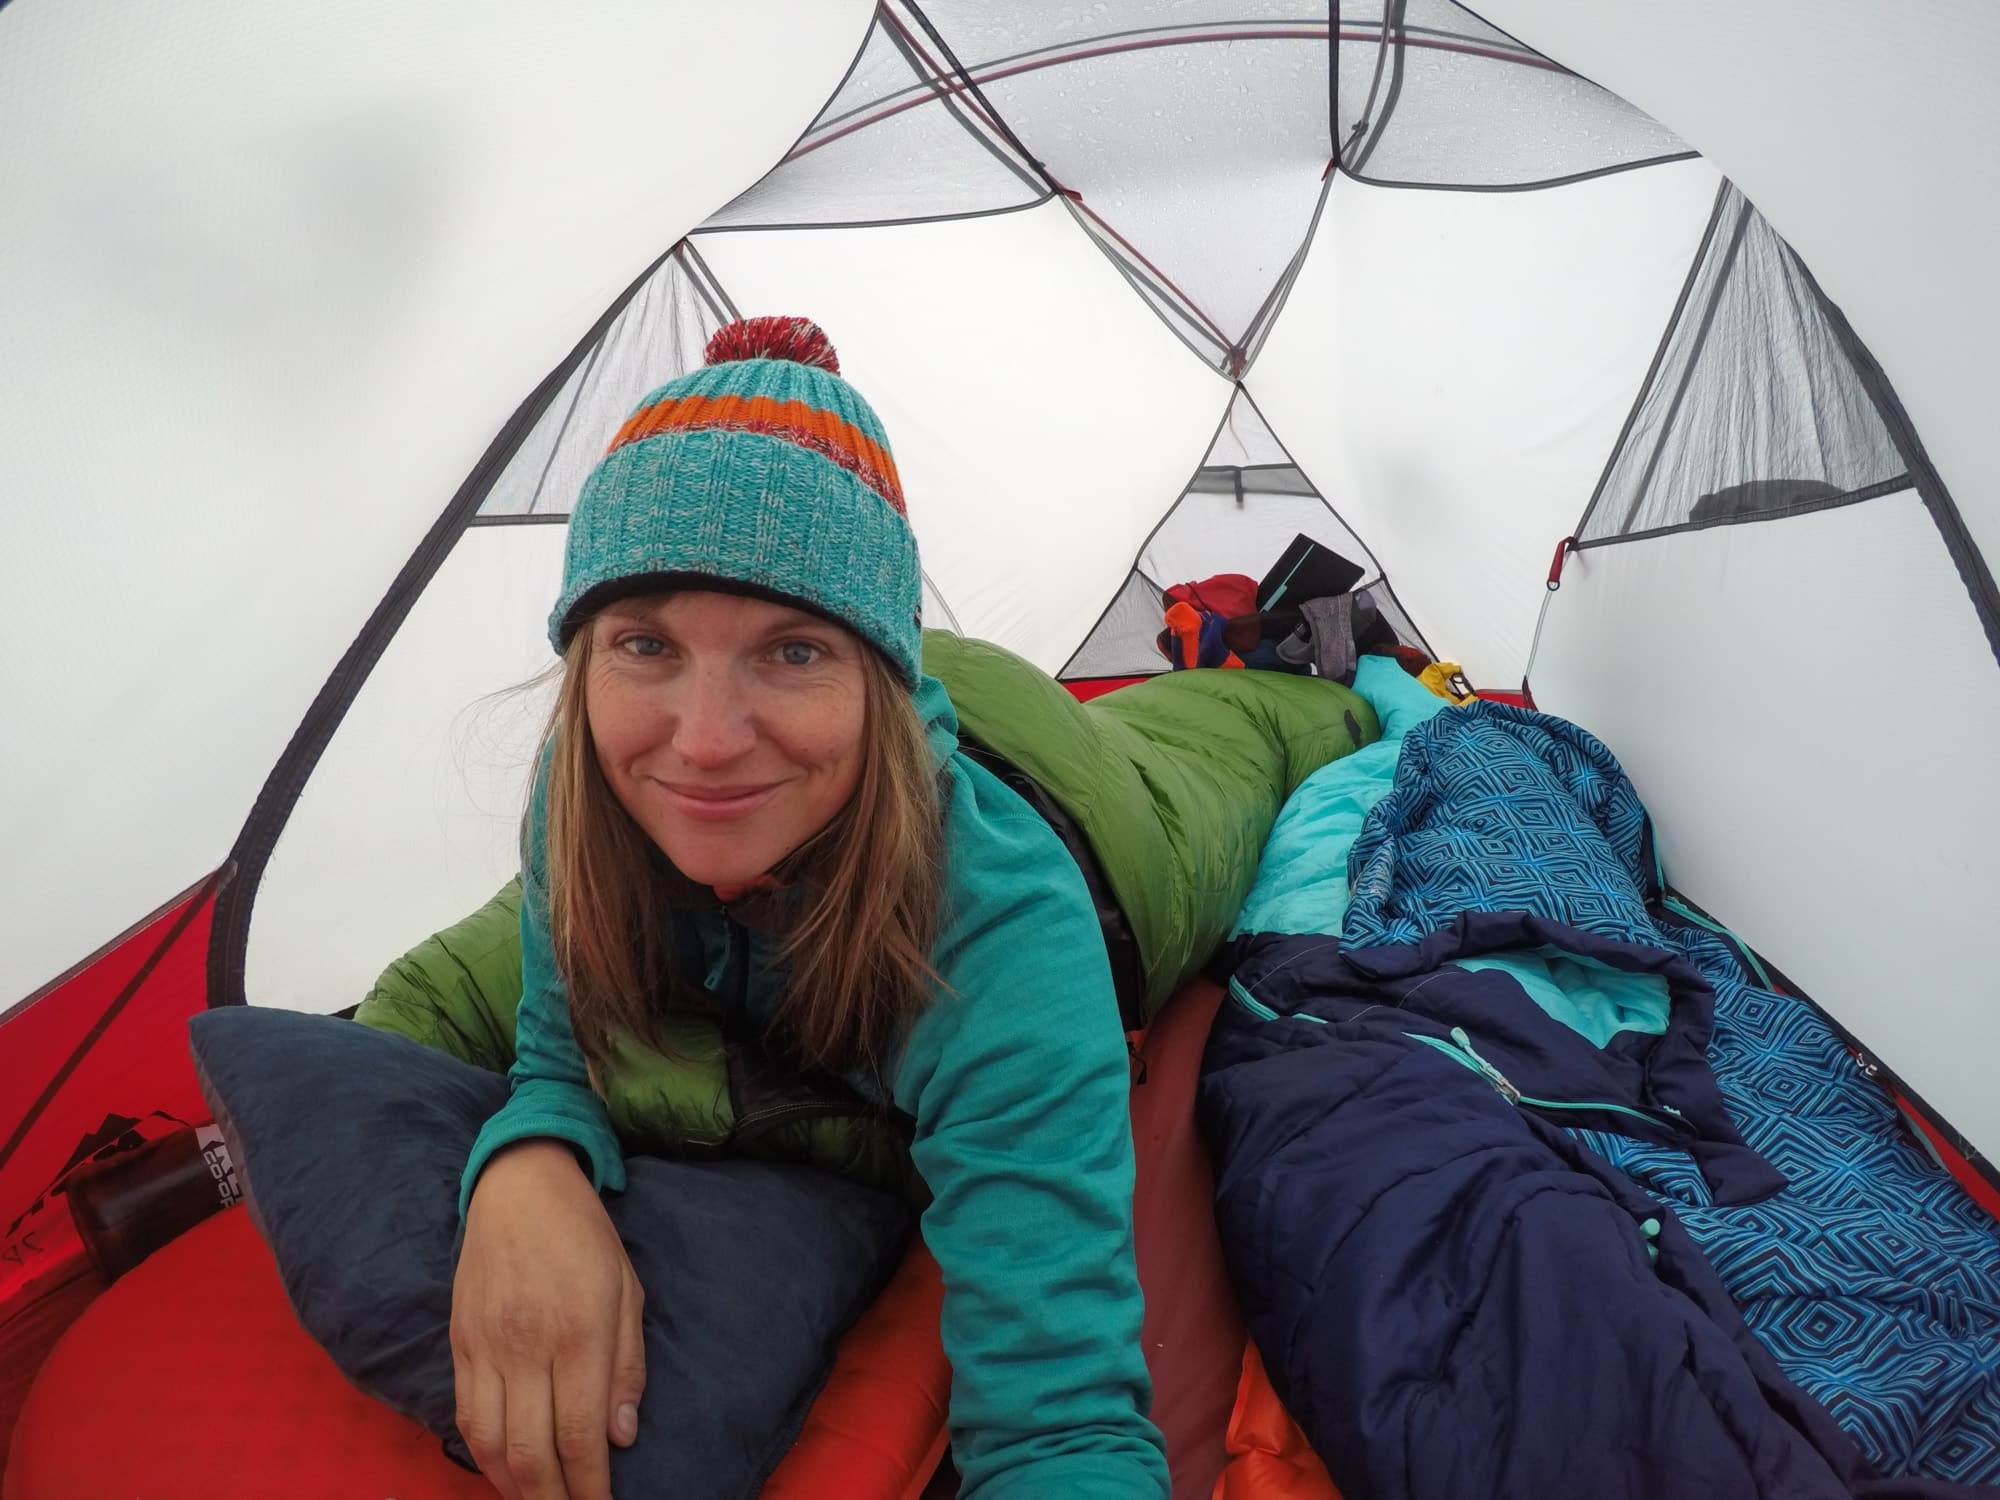 The best sleeping bags for backpacking are lightweight, warm & comfortable. Here are our favorite sleeping bags for women for a variety of budgets in 2021.